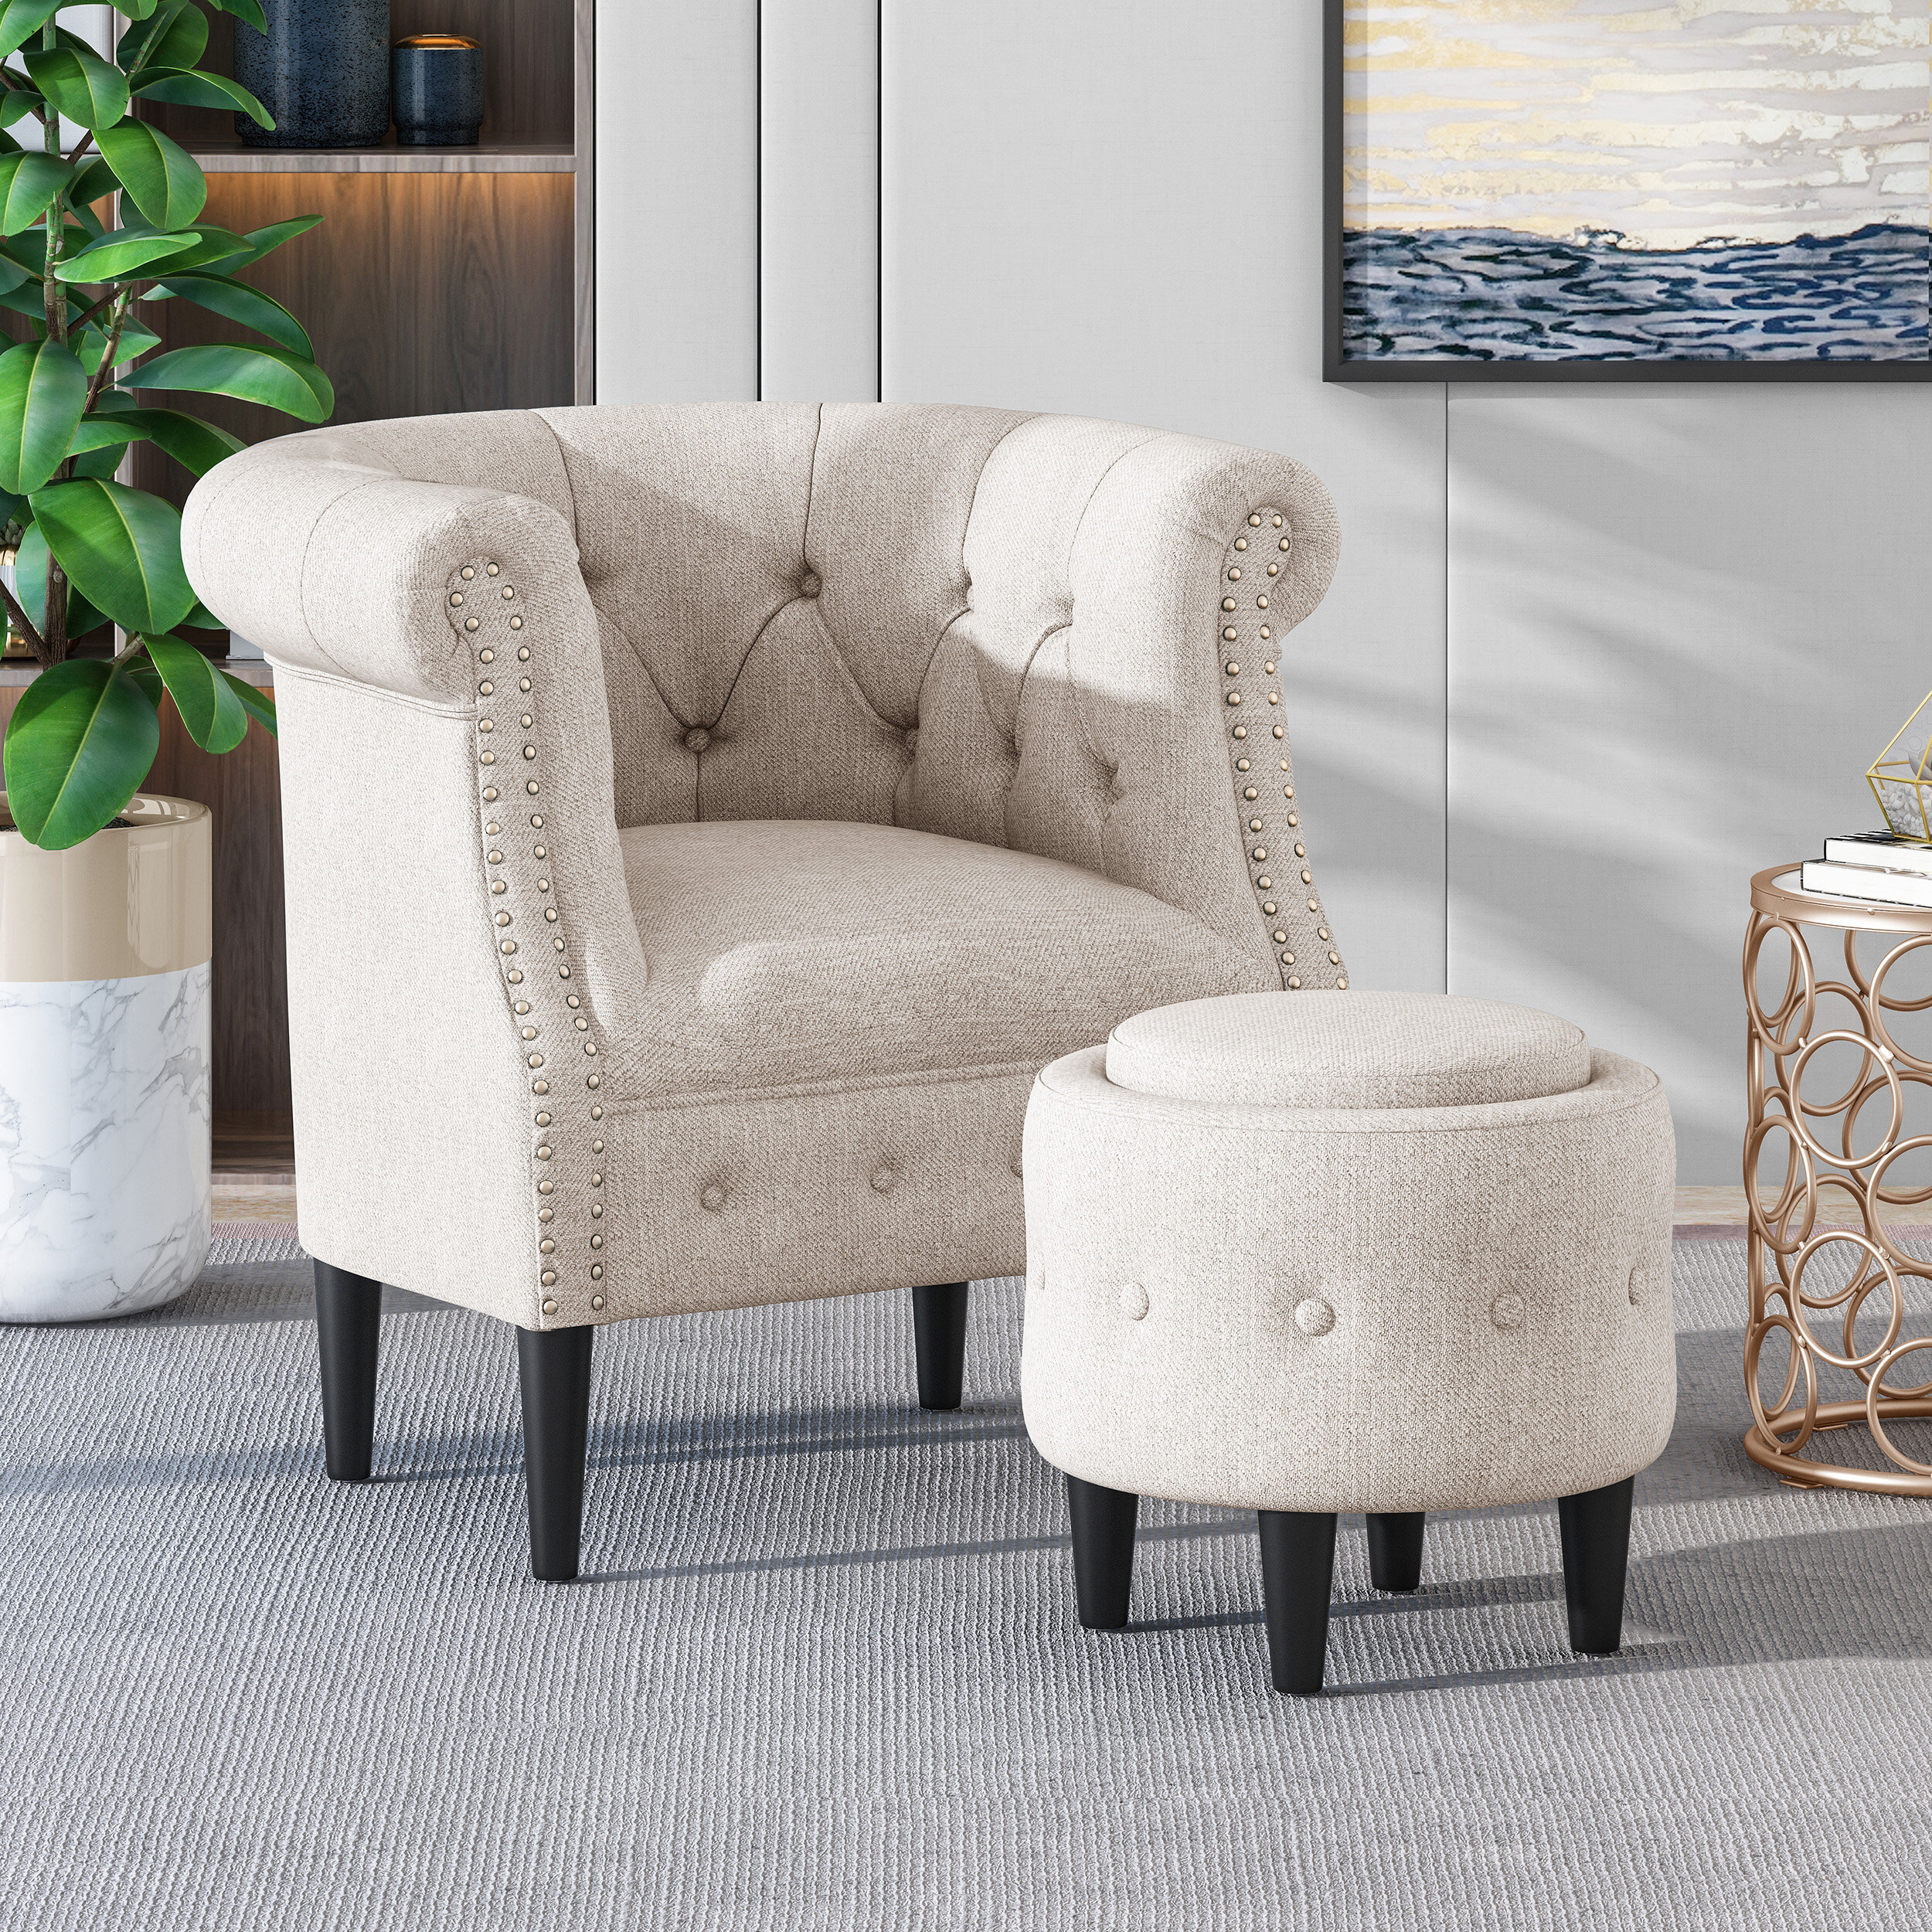 Featured Image of Starks Tufted Fabric Chesterfield Chair And Ottoman Sets